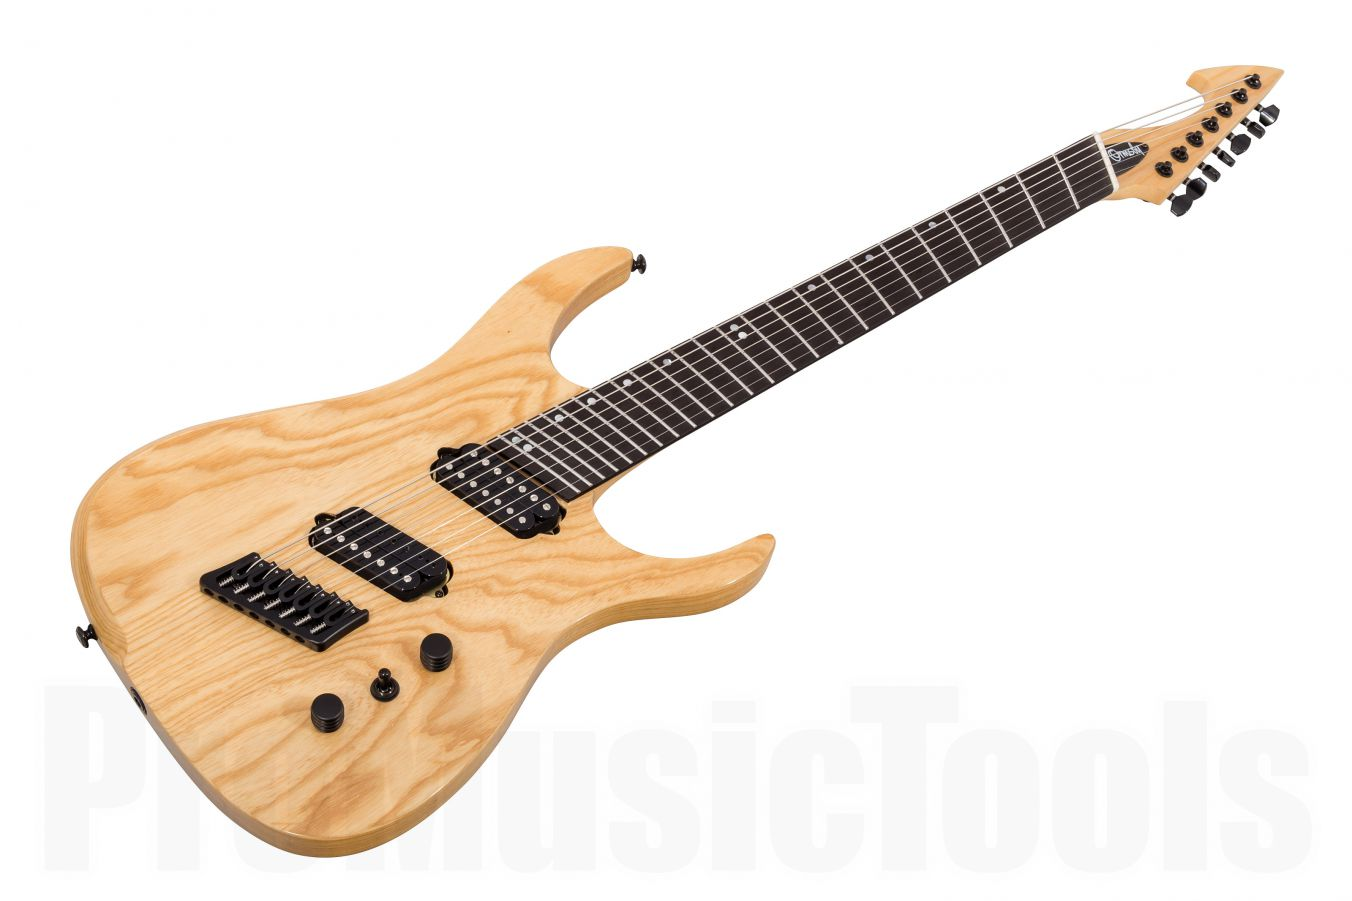 Ormsby Hype GTR 7 Multiscale - Natural Swamp Ash